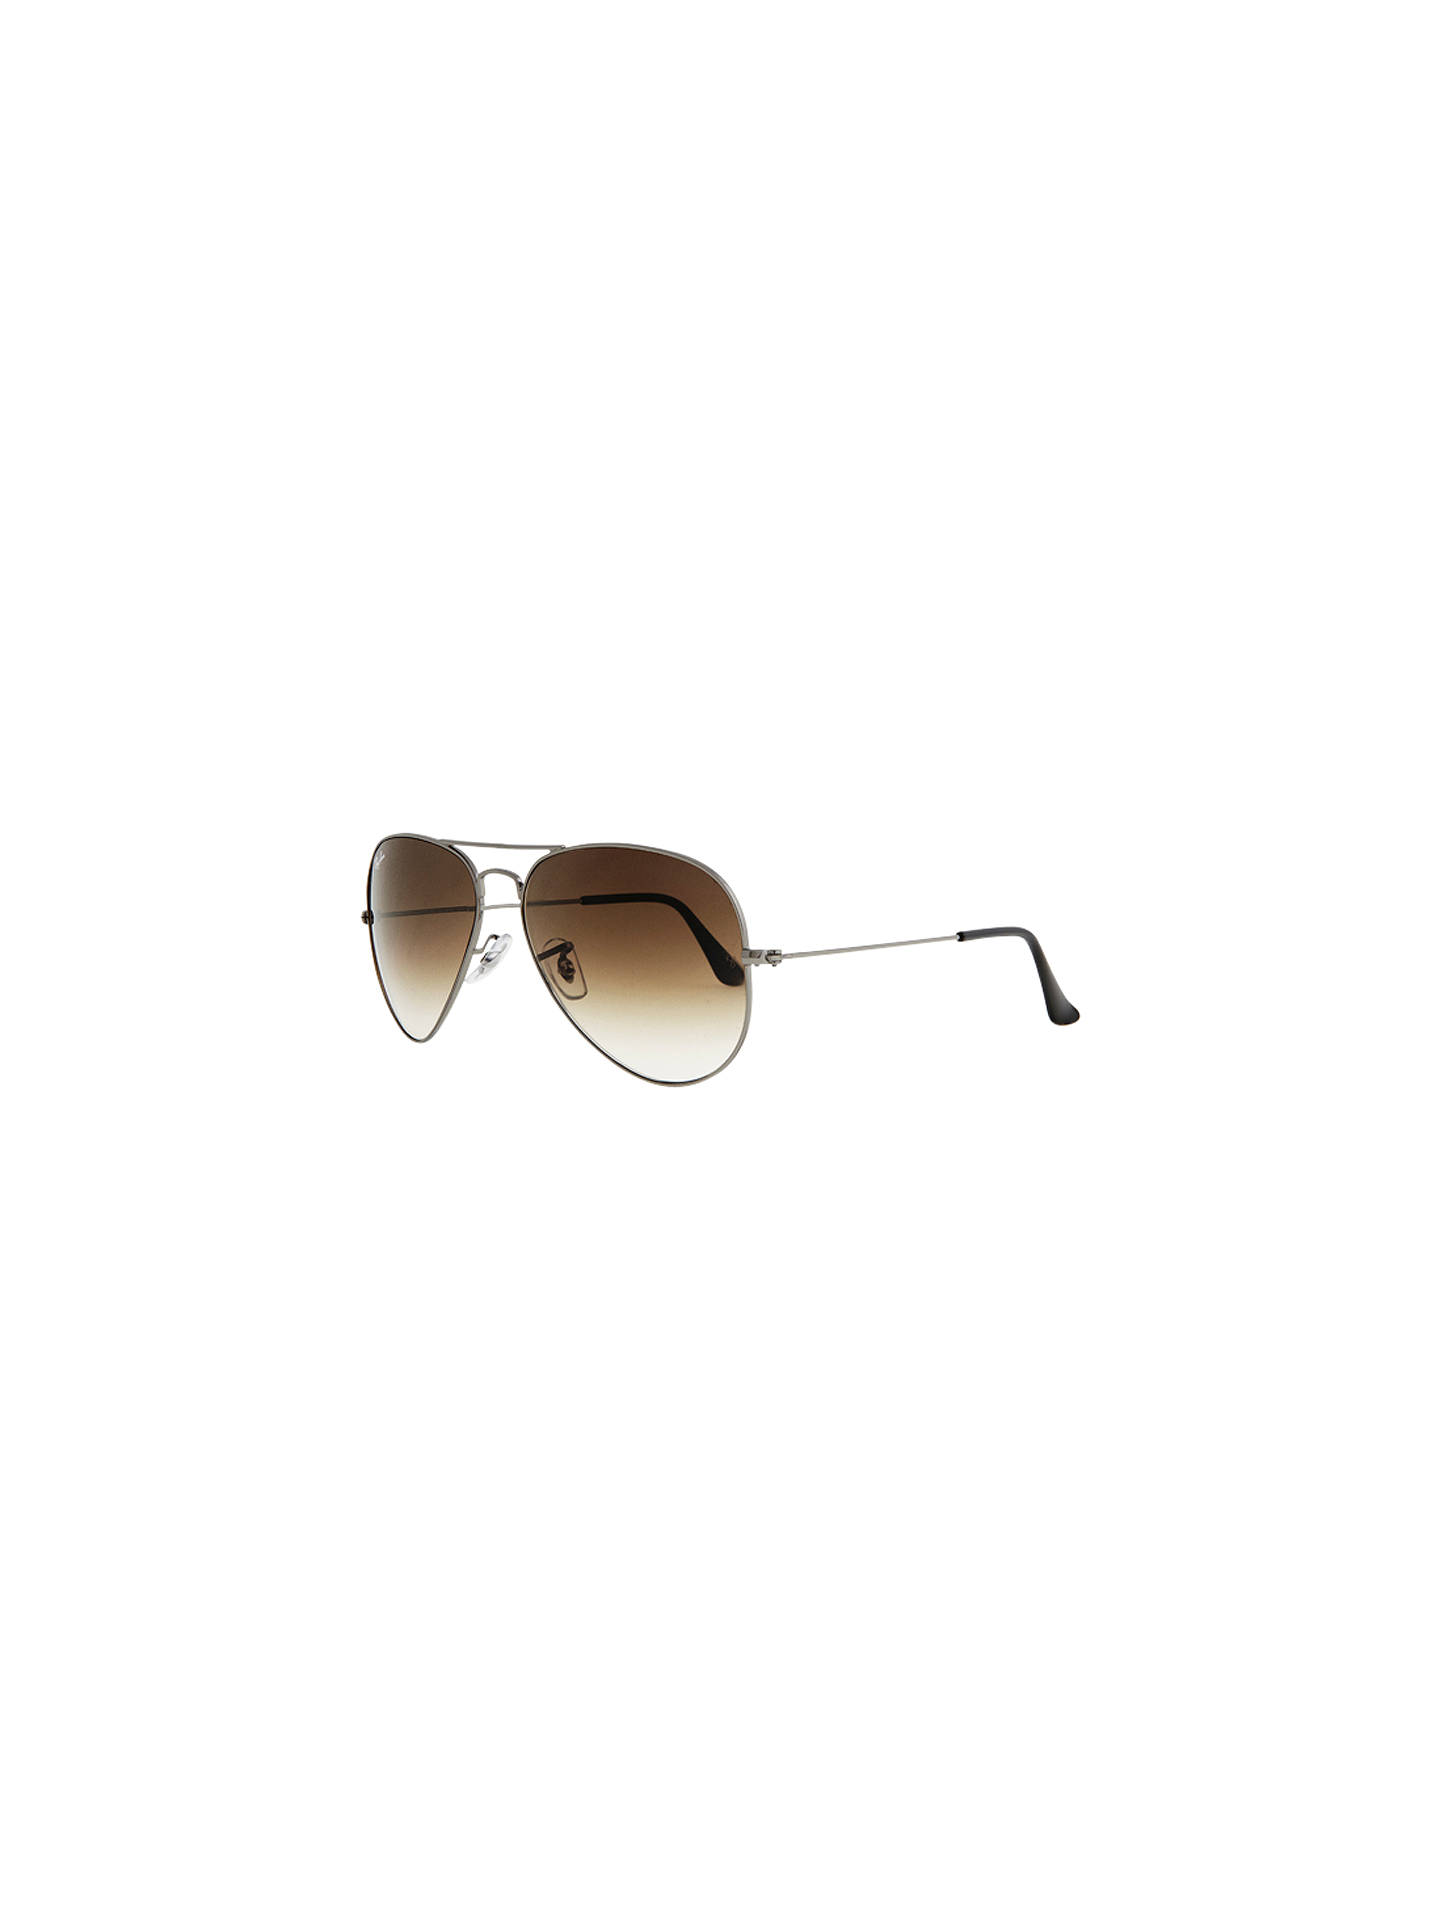 fe91096f51620 BuyRay-Ban RB3025 Iconic Aviator Sunglasses, Silver   Brown Online at  johnlewis.com ...